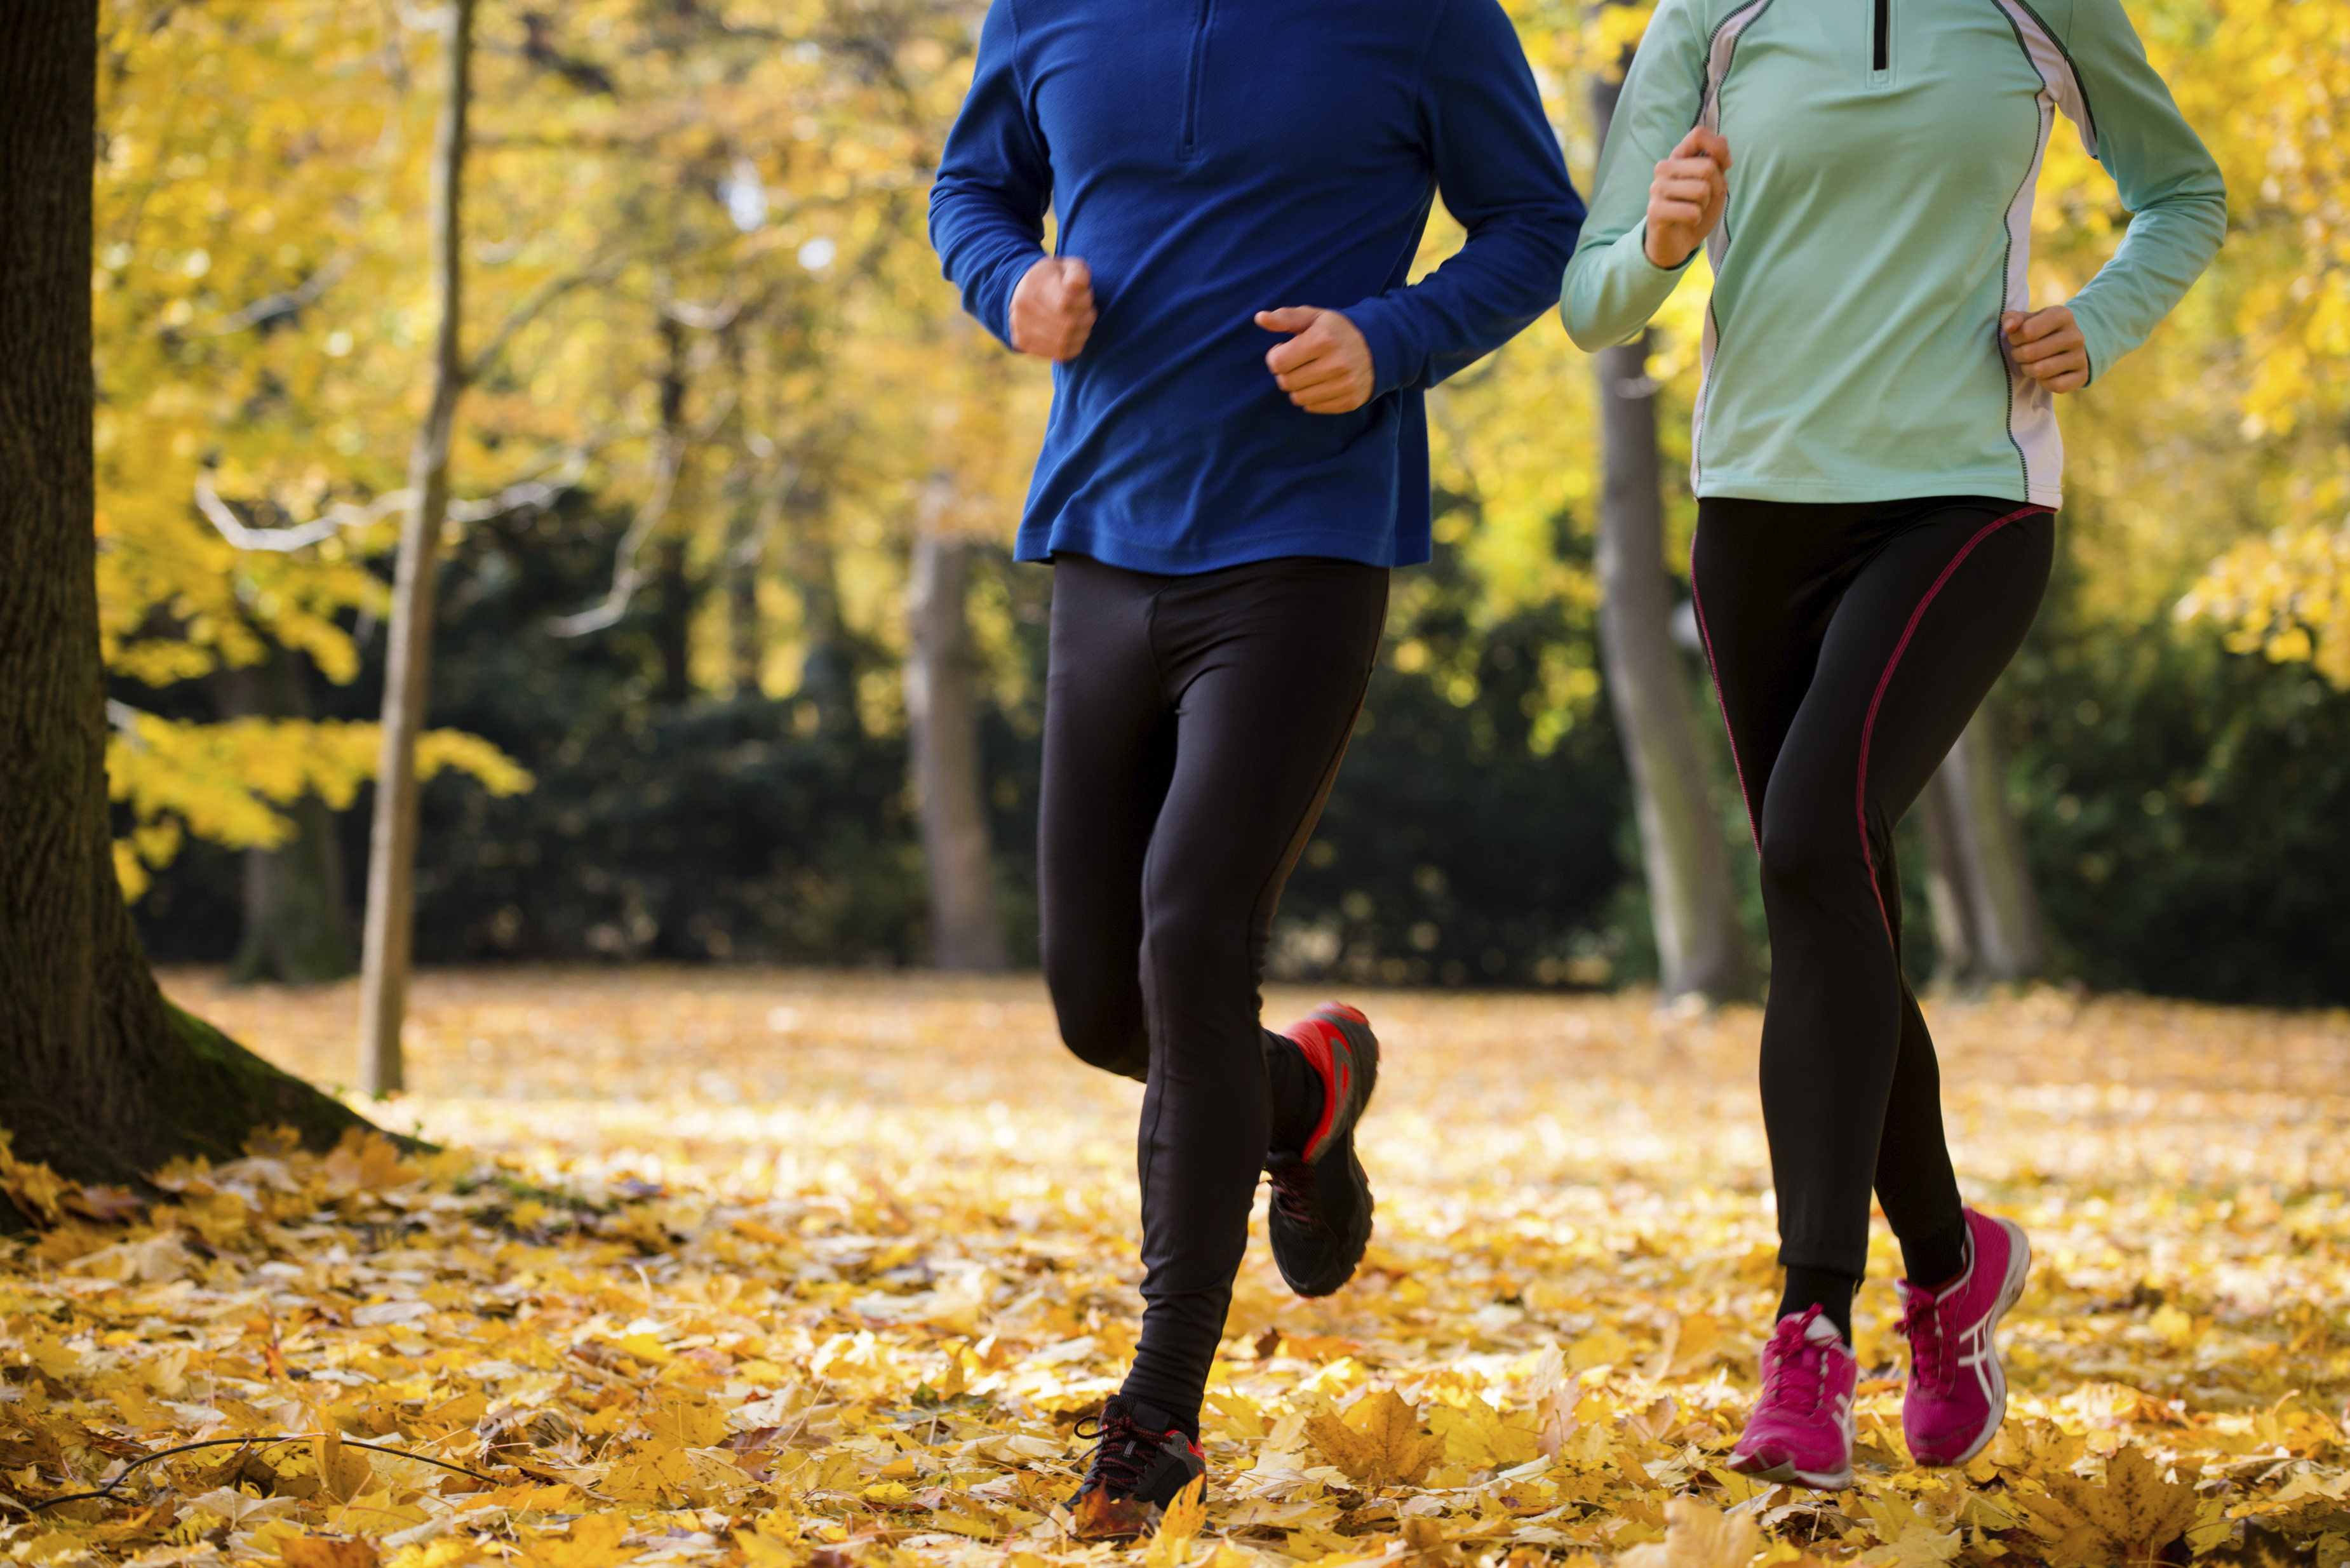 Detail of couple jogging together in beautiful autumn nature